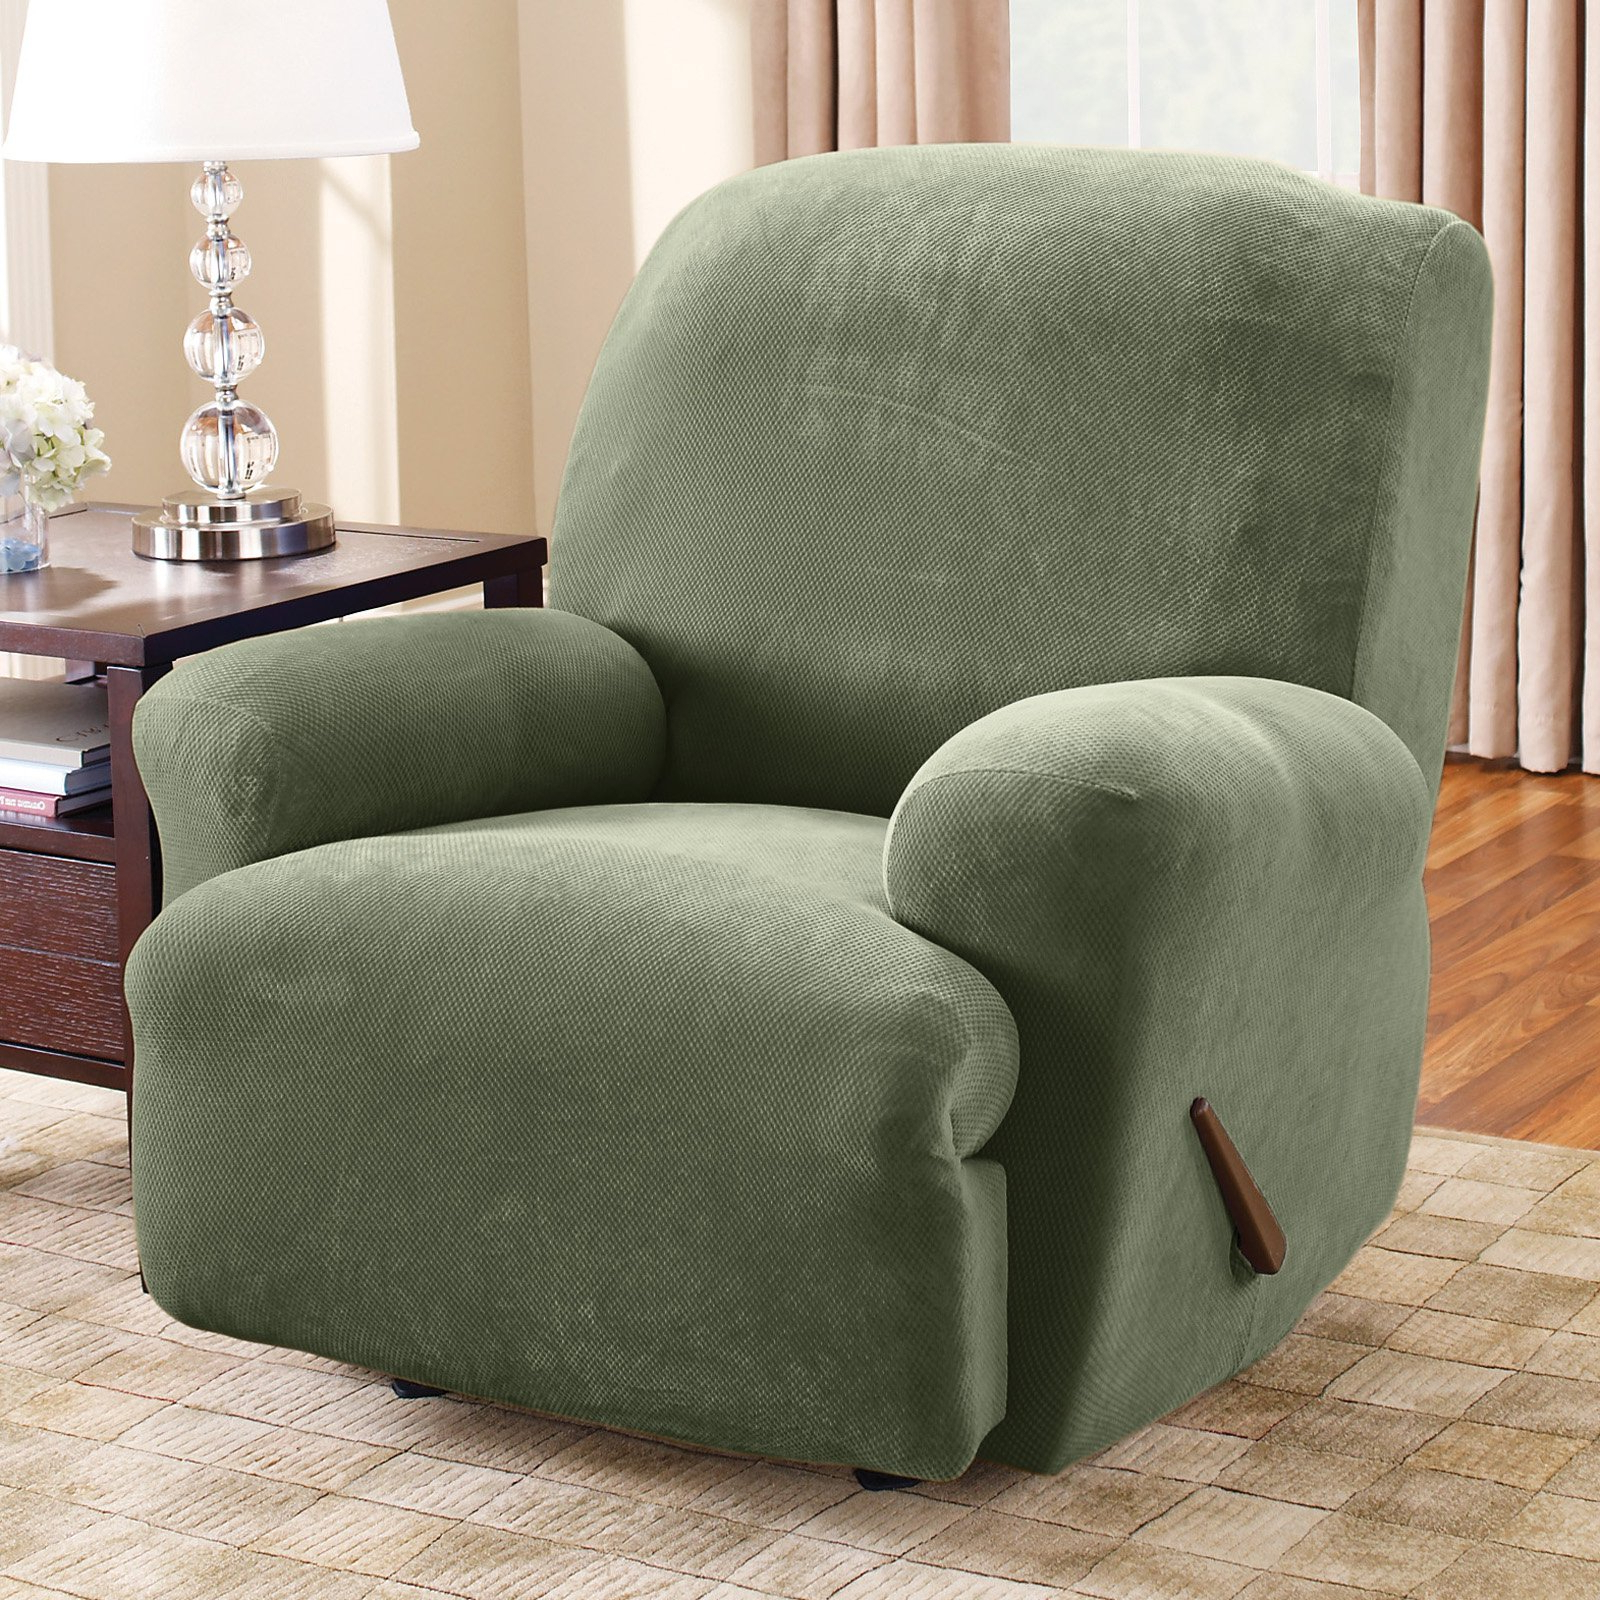 Sofas: Glamour Sofa With Recliner Covers Walmart Design Ideas Within Popular Sofa And Chair Slipcovers (View 4 of 20)